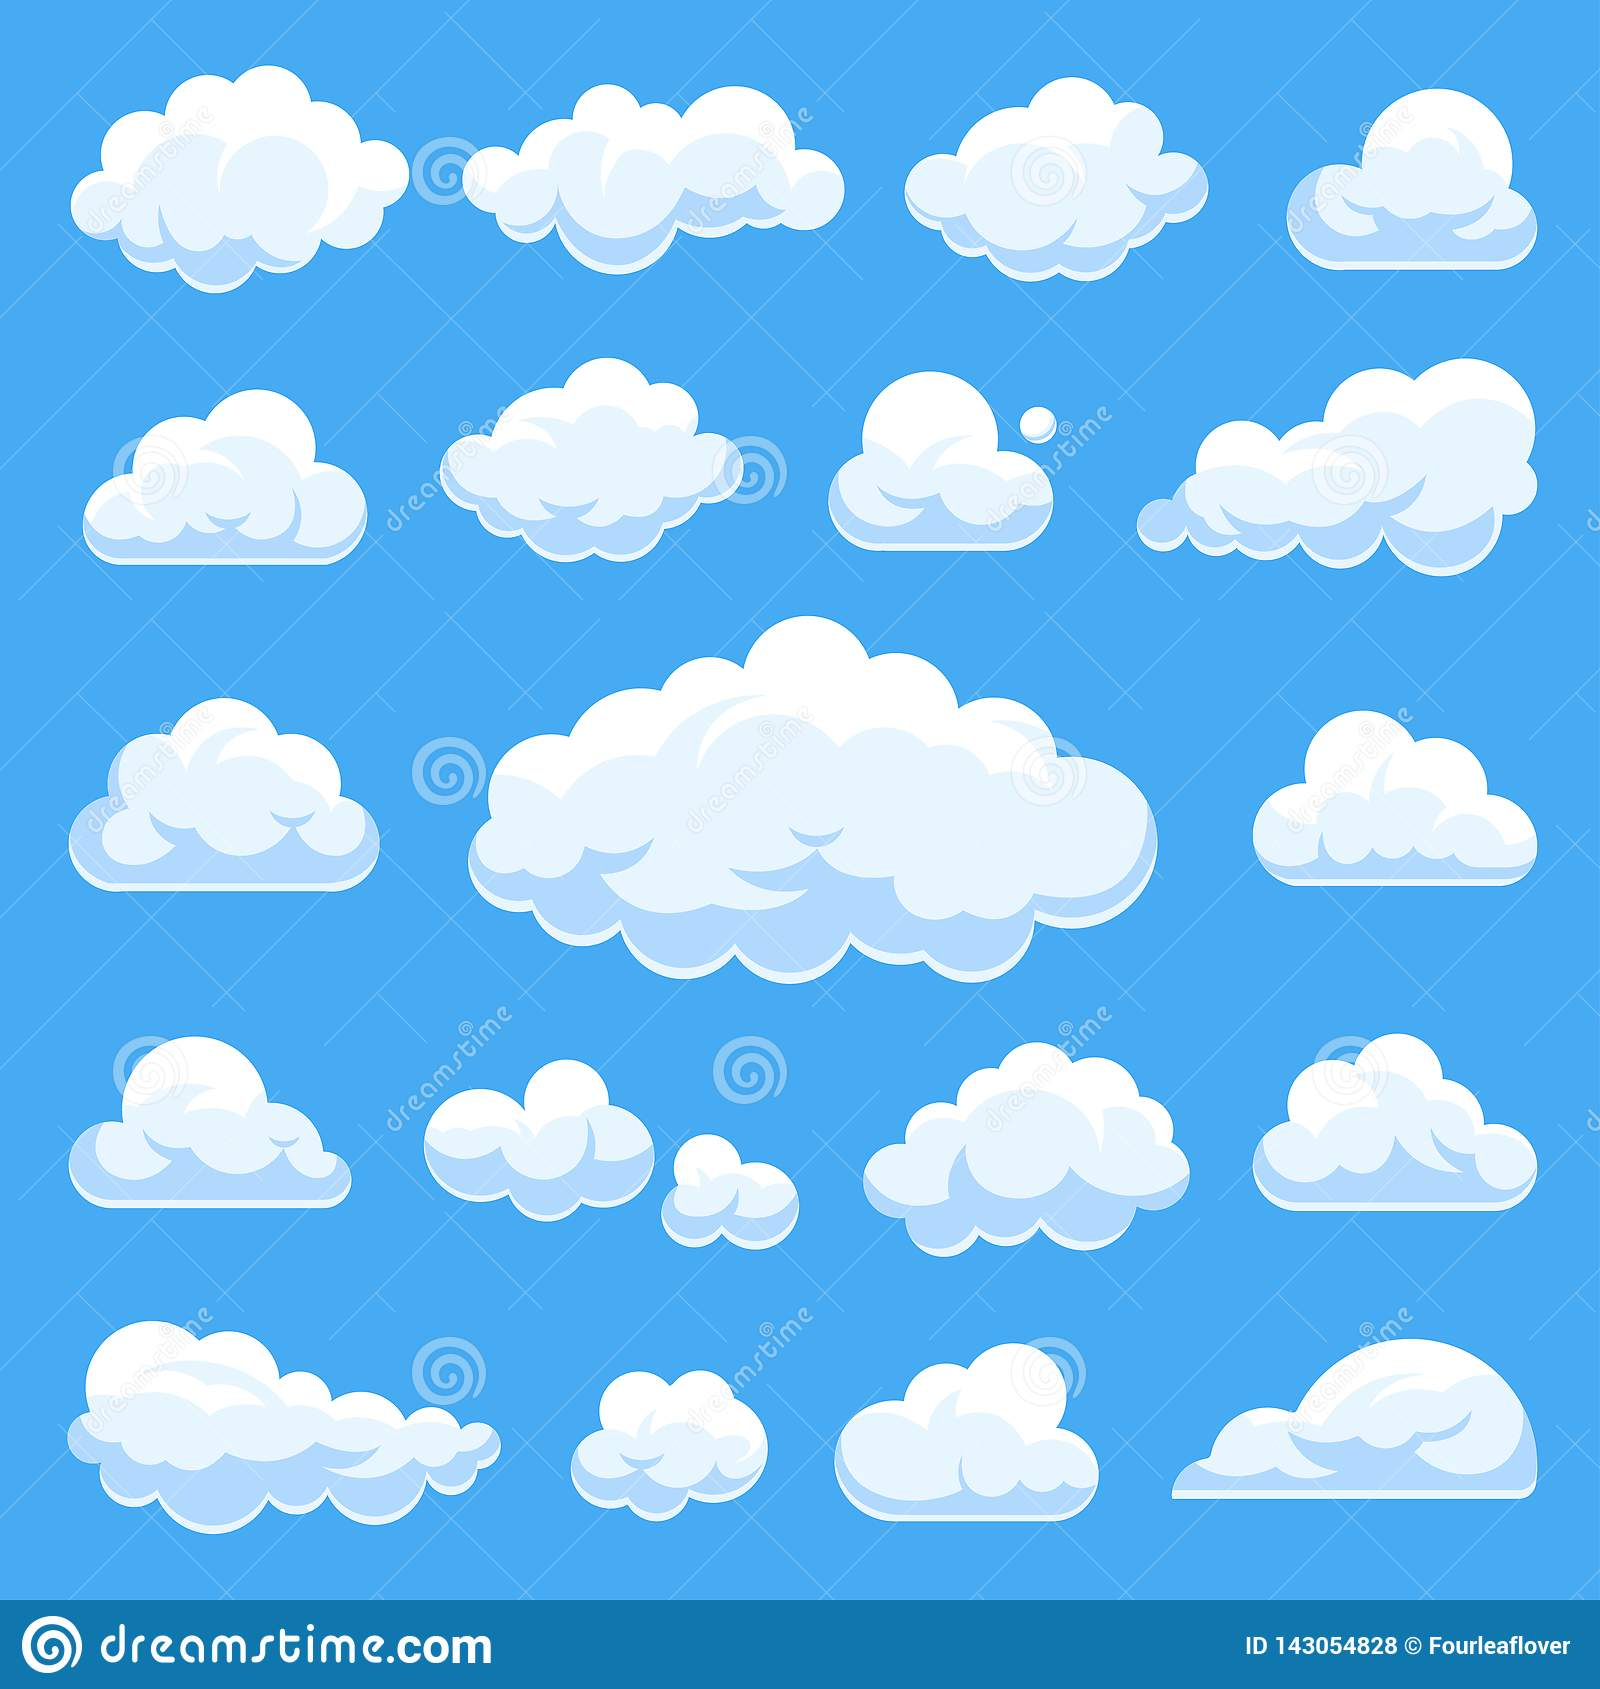 Big set of vector cartoon clouds